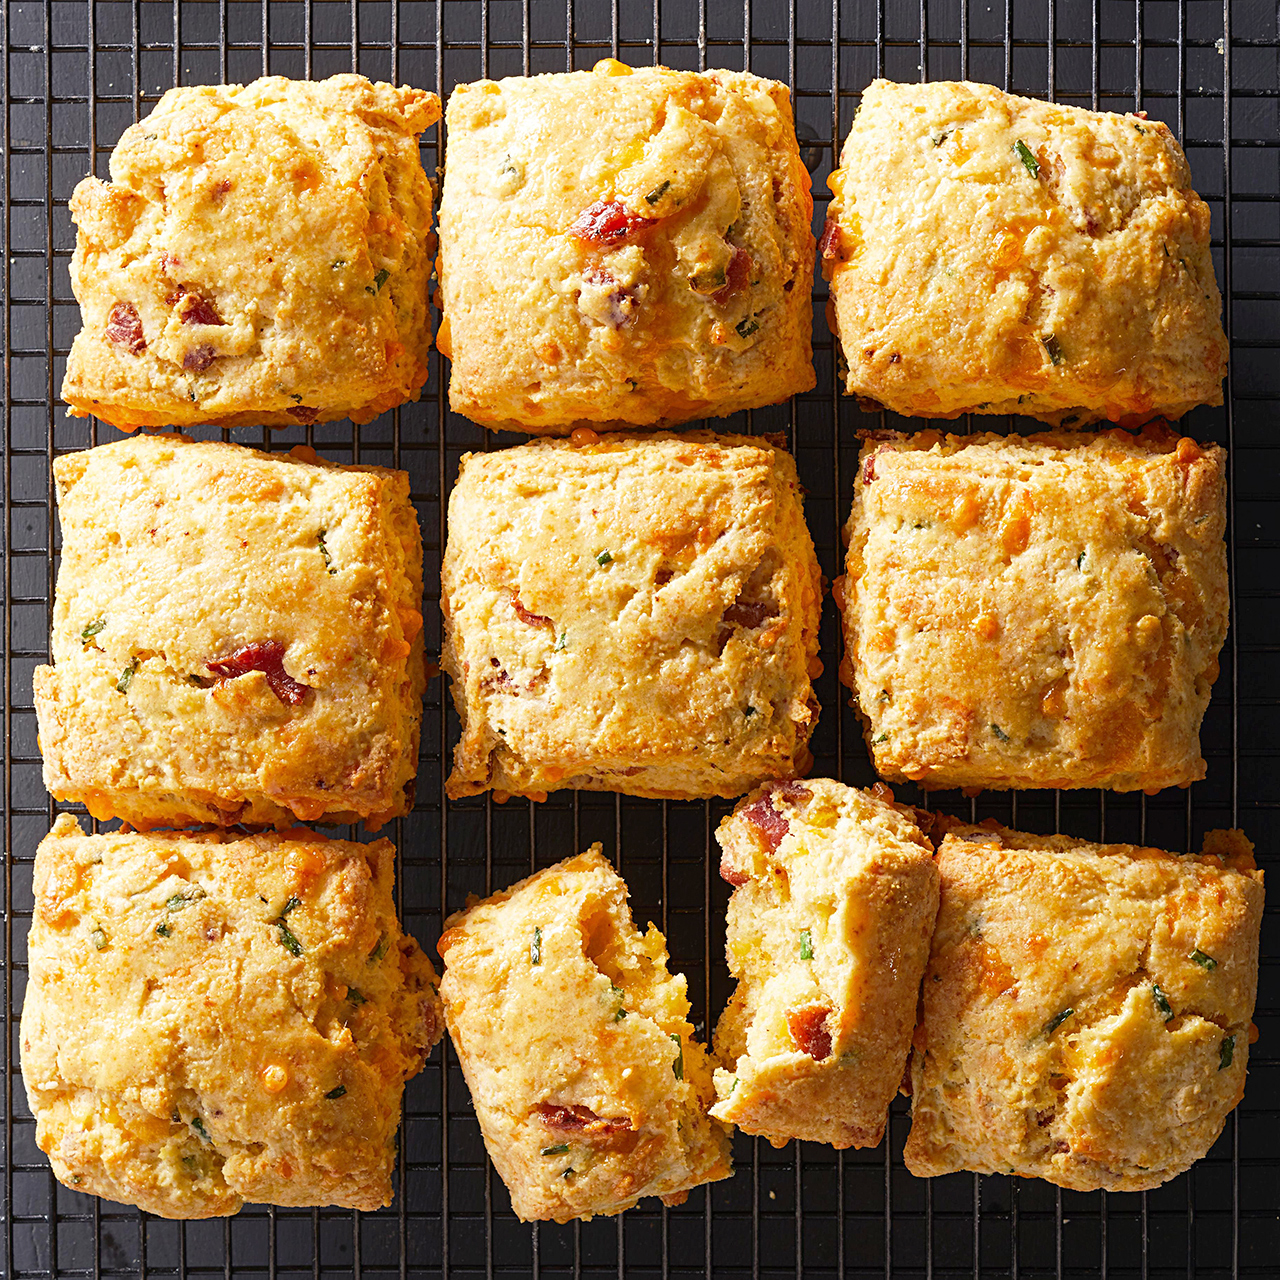 Bacon-Cheddar Cornmeal Biscuits